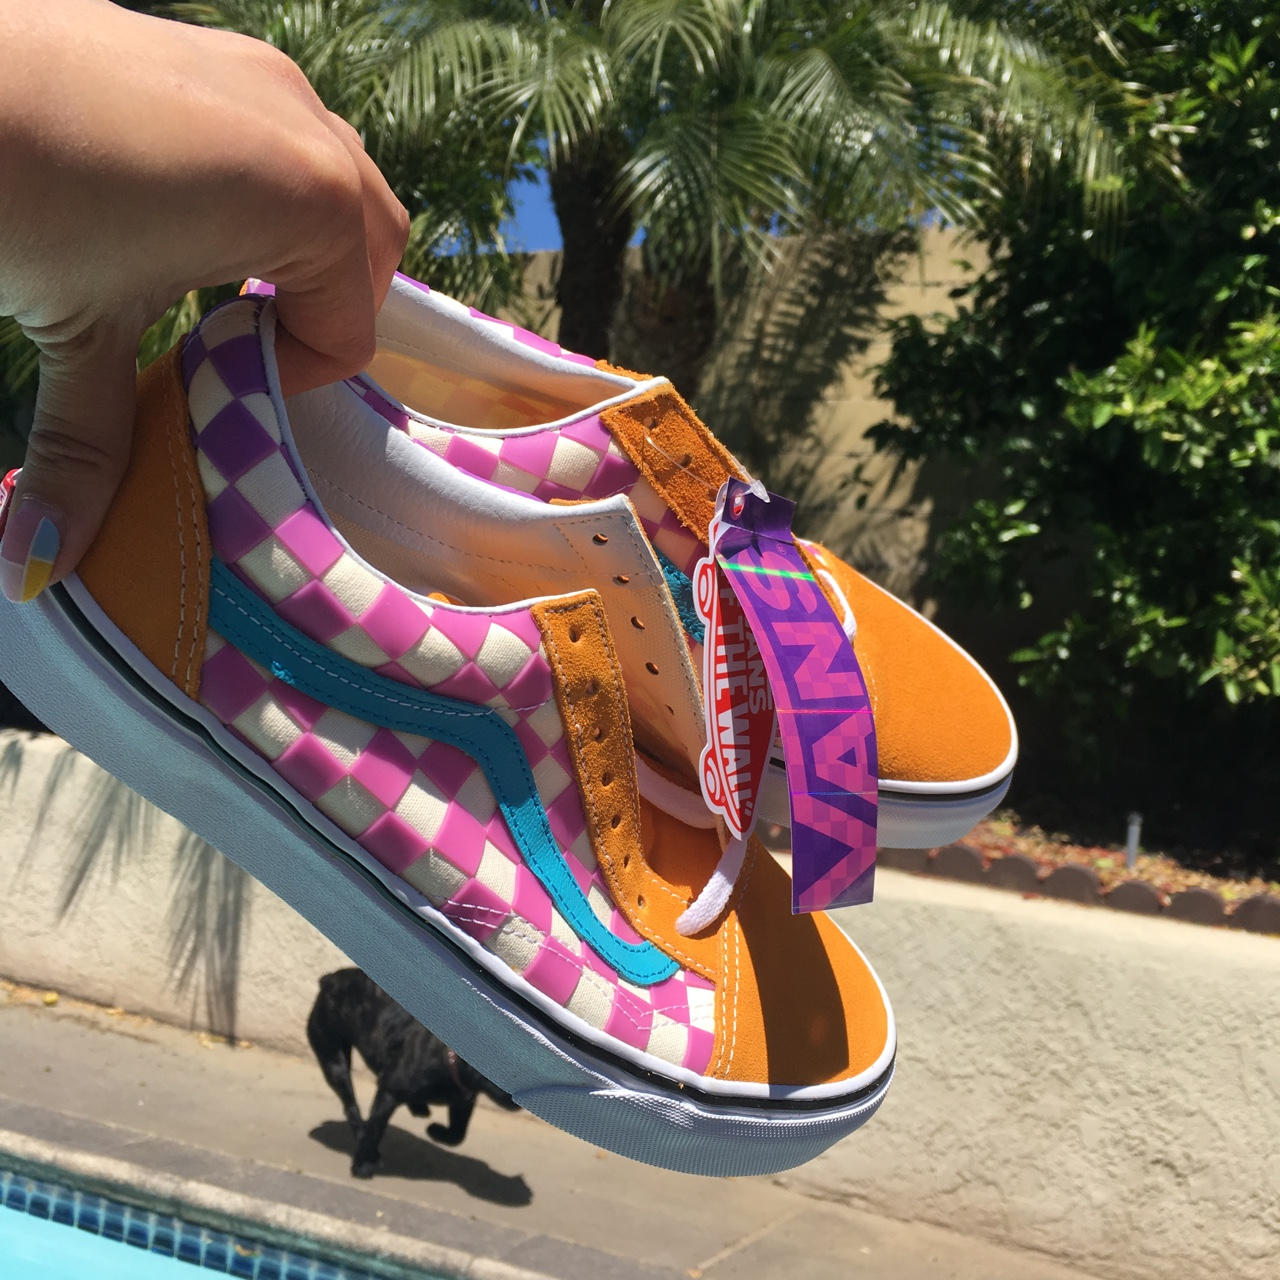 VANS Colorful 90's inspired